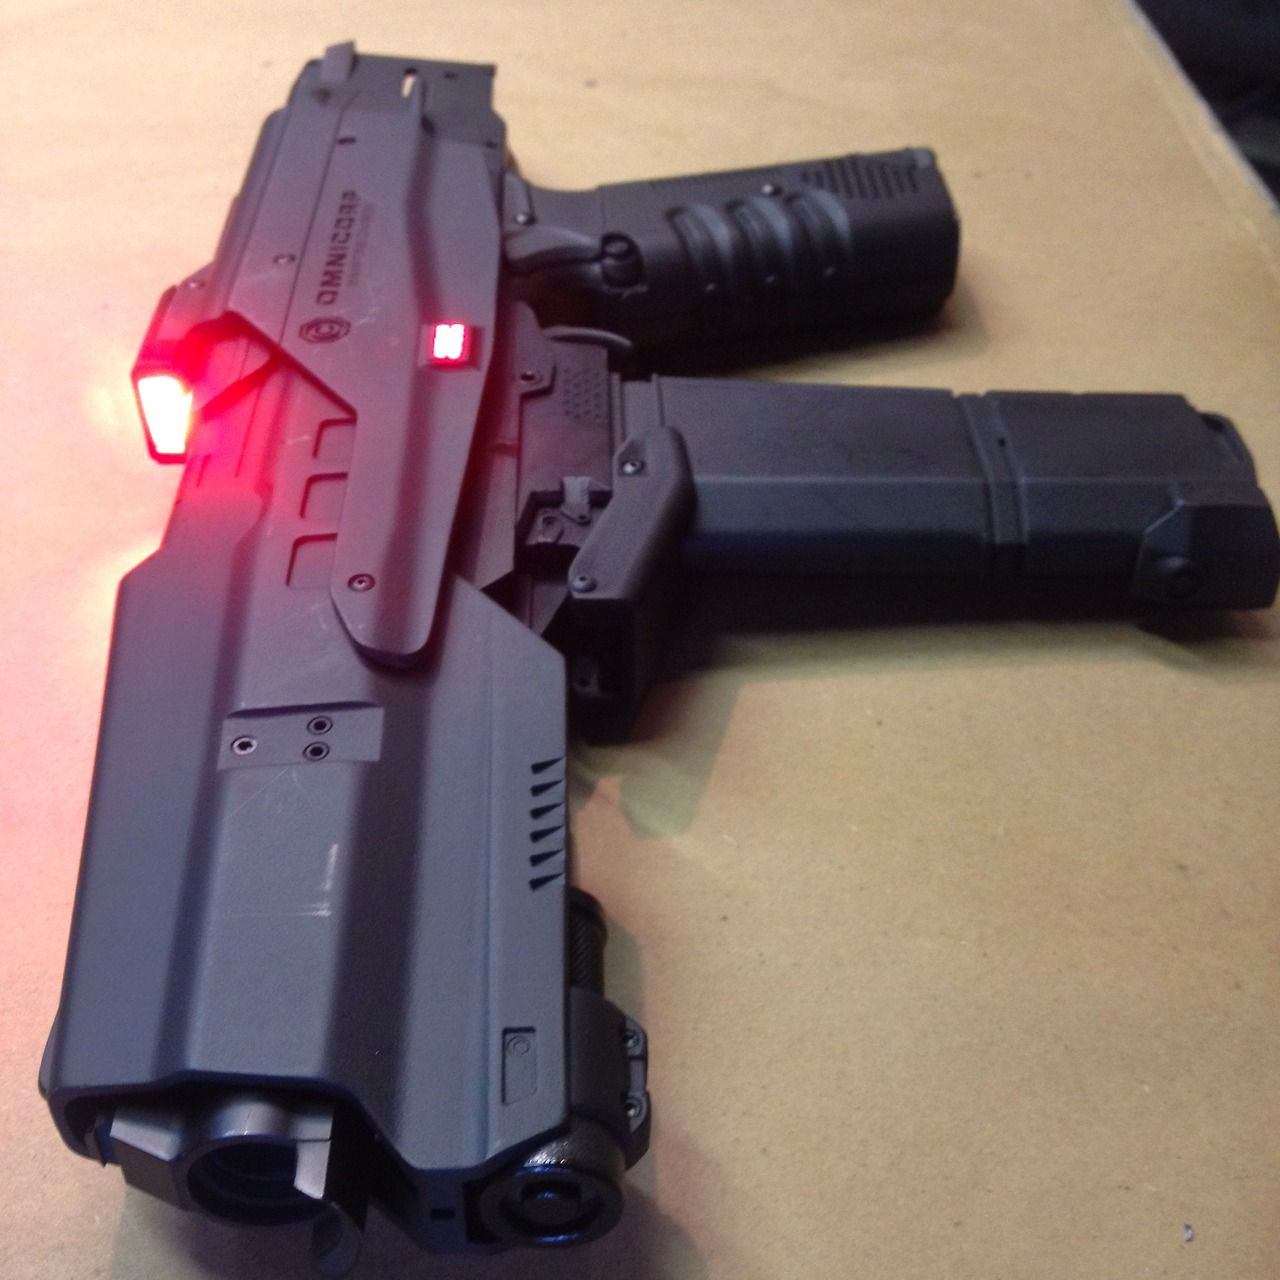 Omnicorp Weapons Division M2 Battle Rifle. The Auto 50 .50